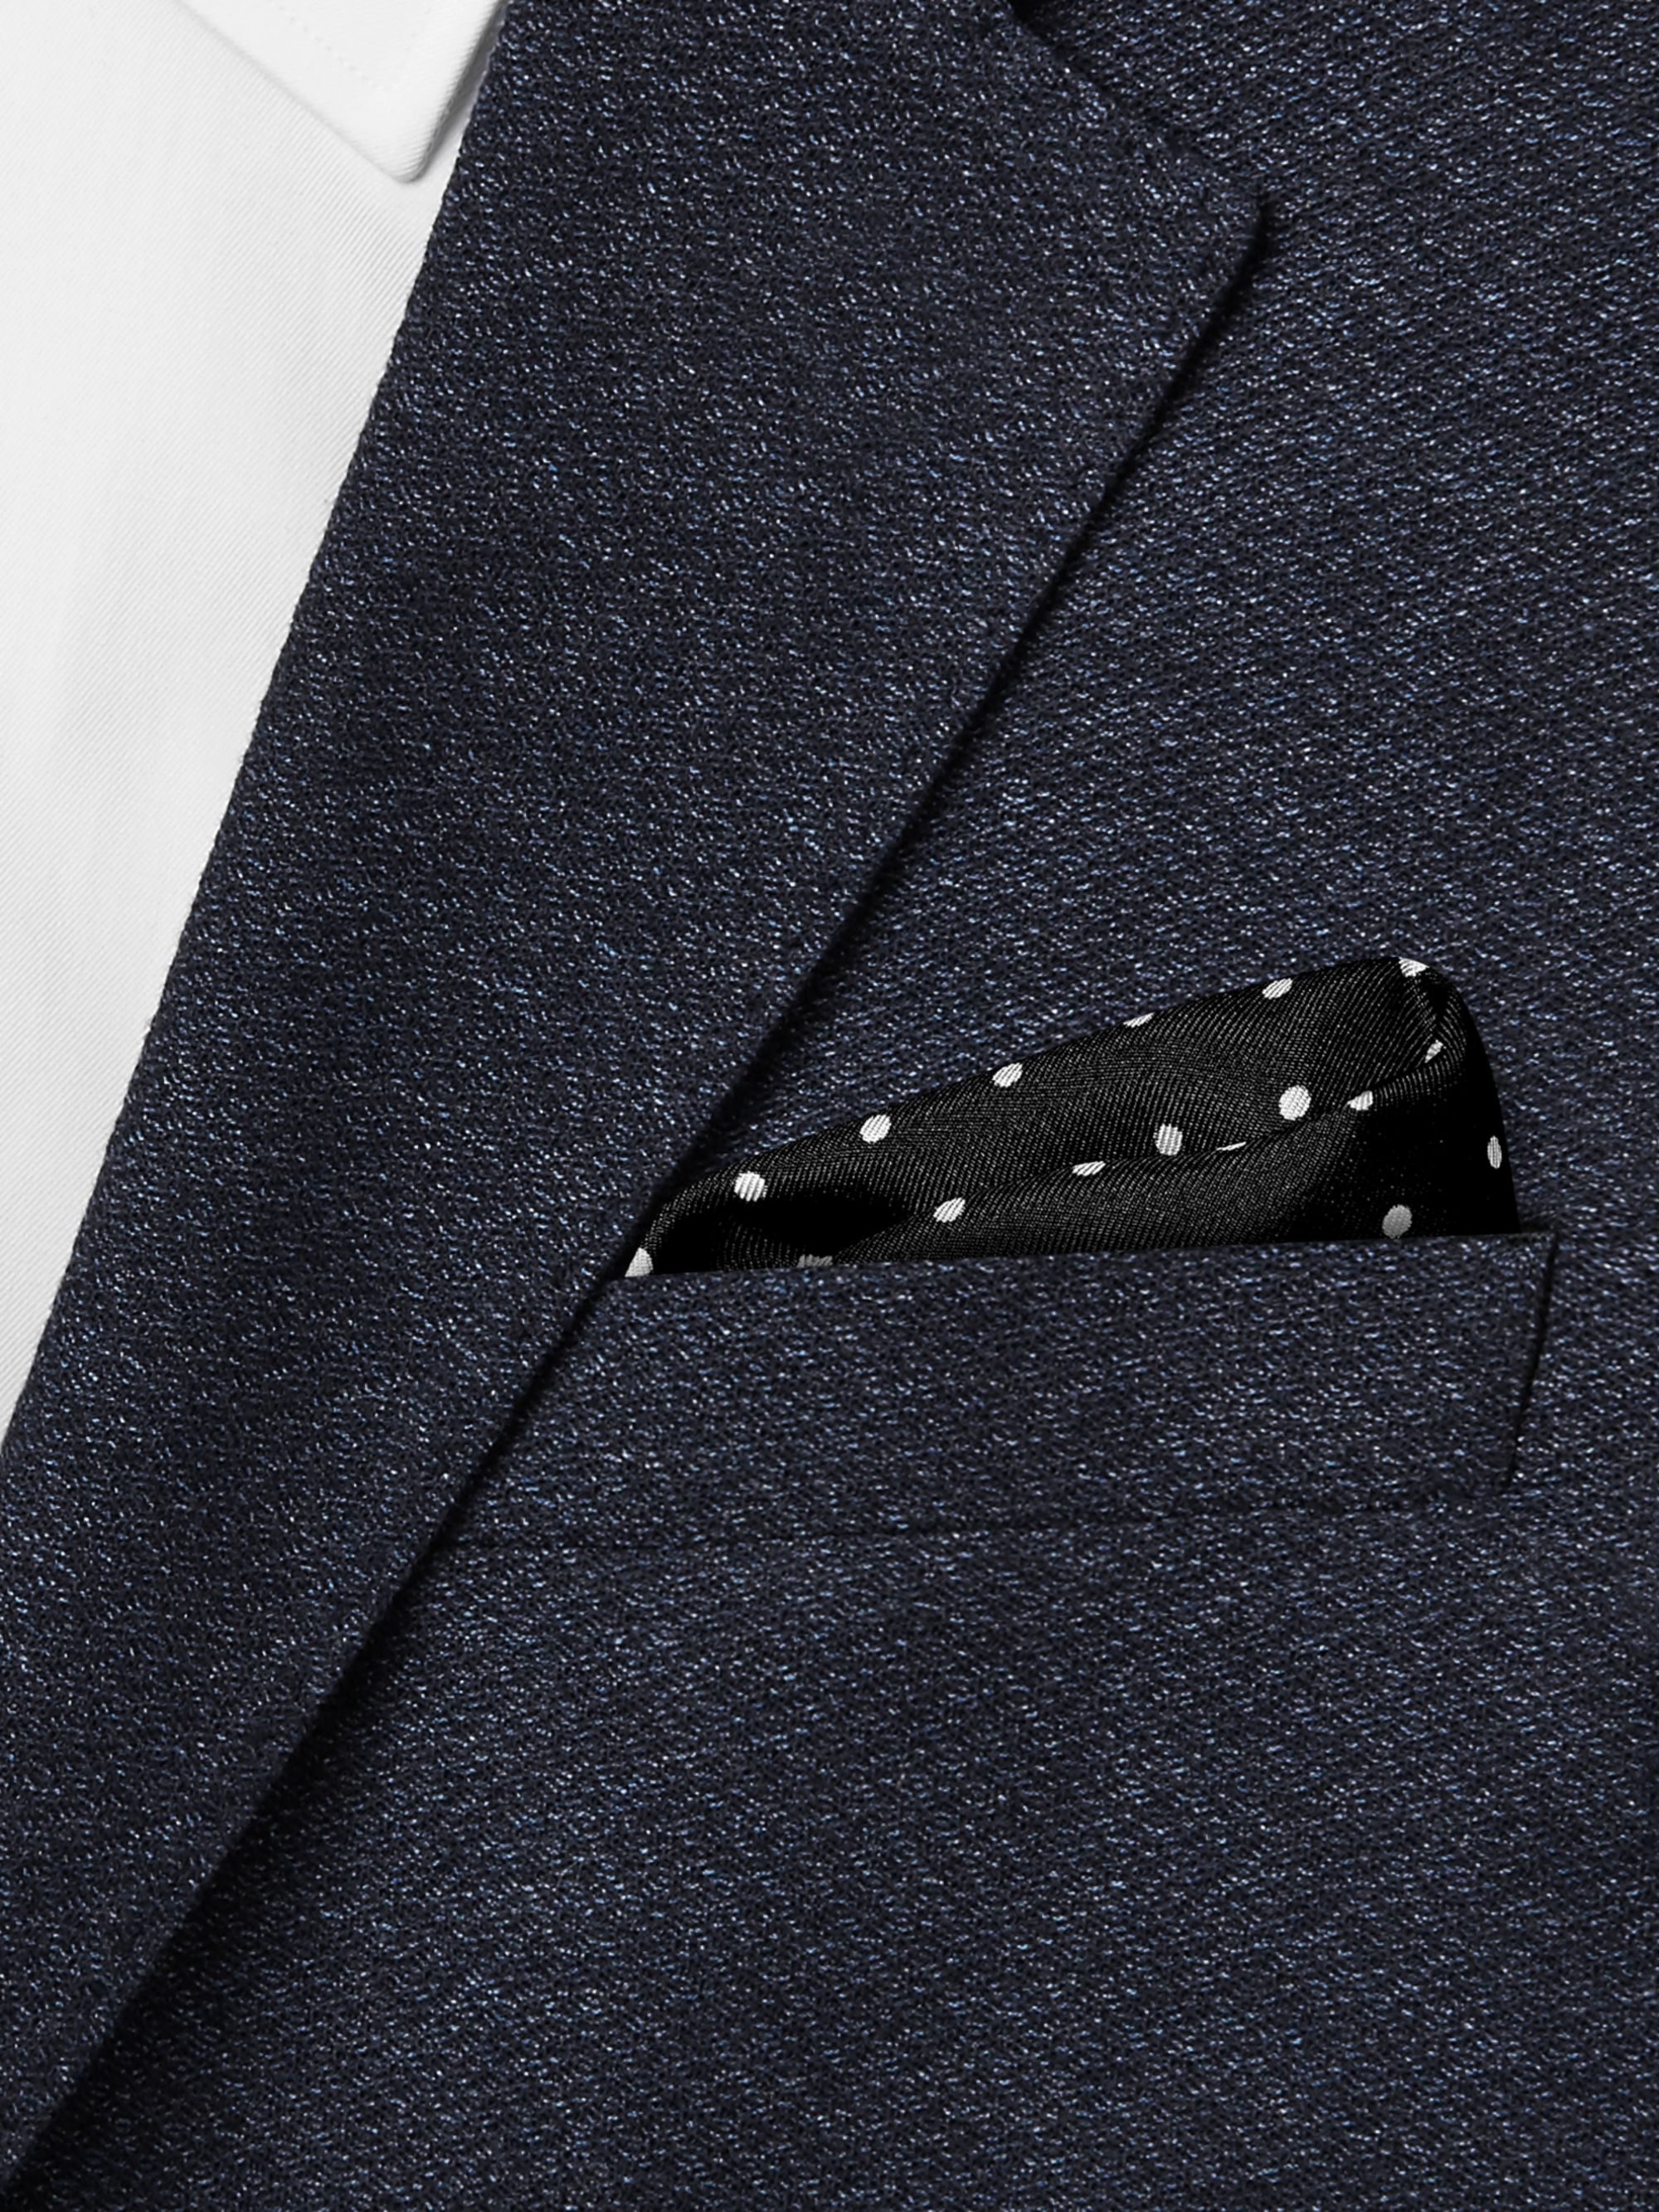 Dolce & Gabbana Polka-Dot Silk-Twill Pocket Square